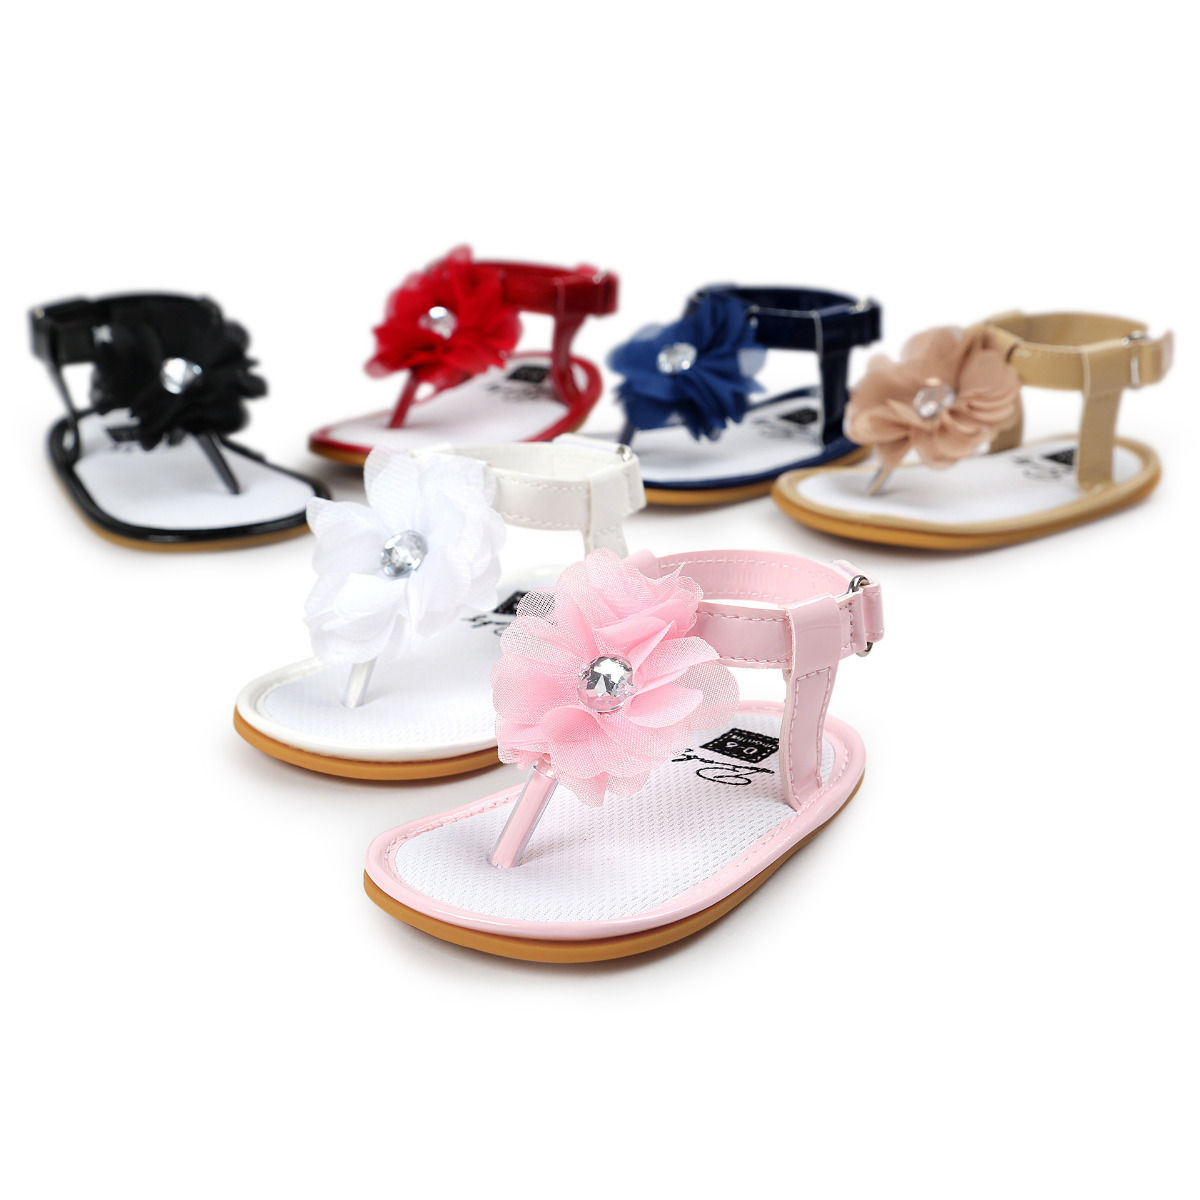 Cute Newborn Baby Girls Floral Sneakers Bow Non-slip Crib Shoes Soft Sole Prewalker 0-18M